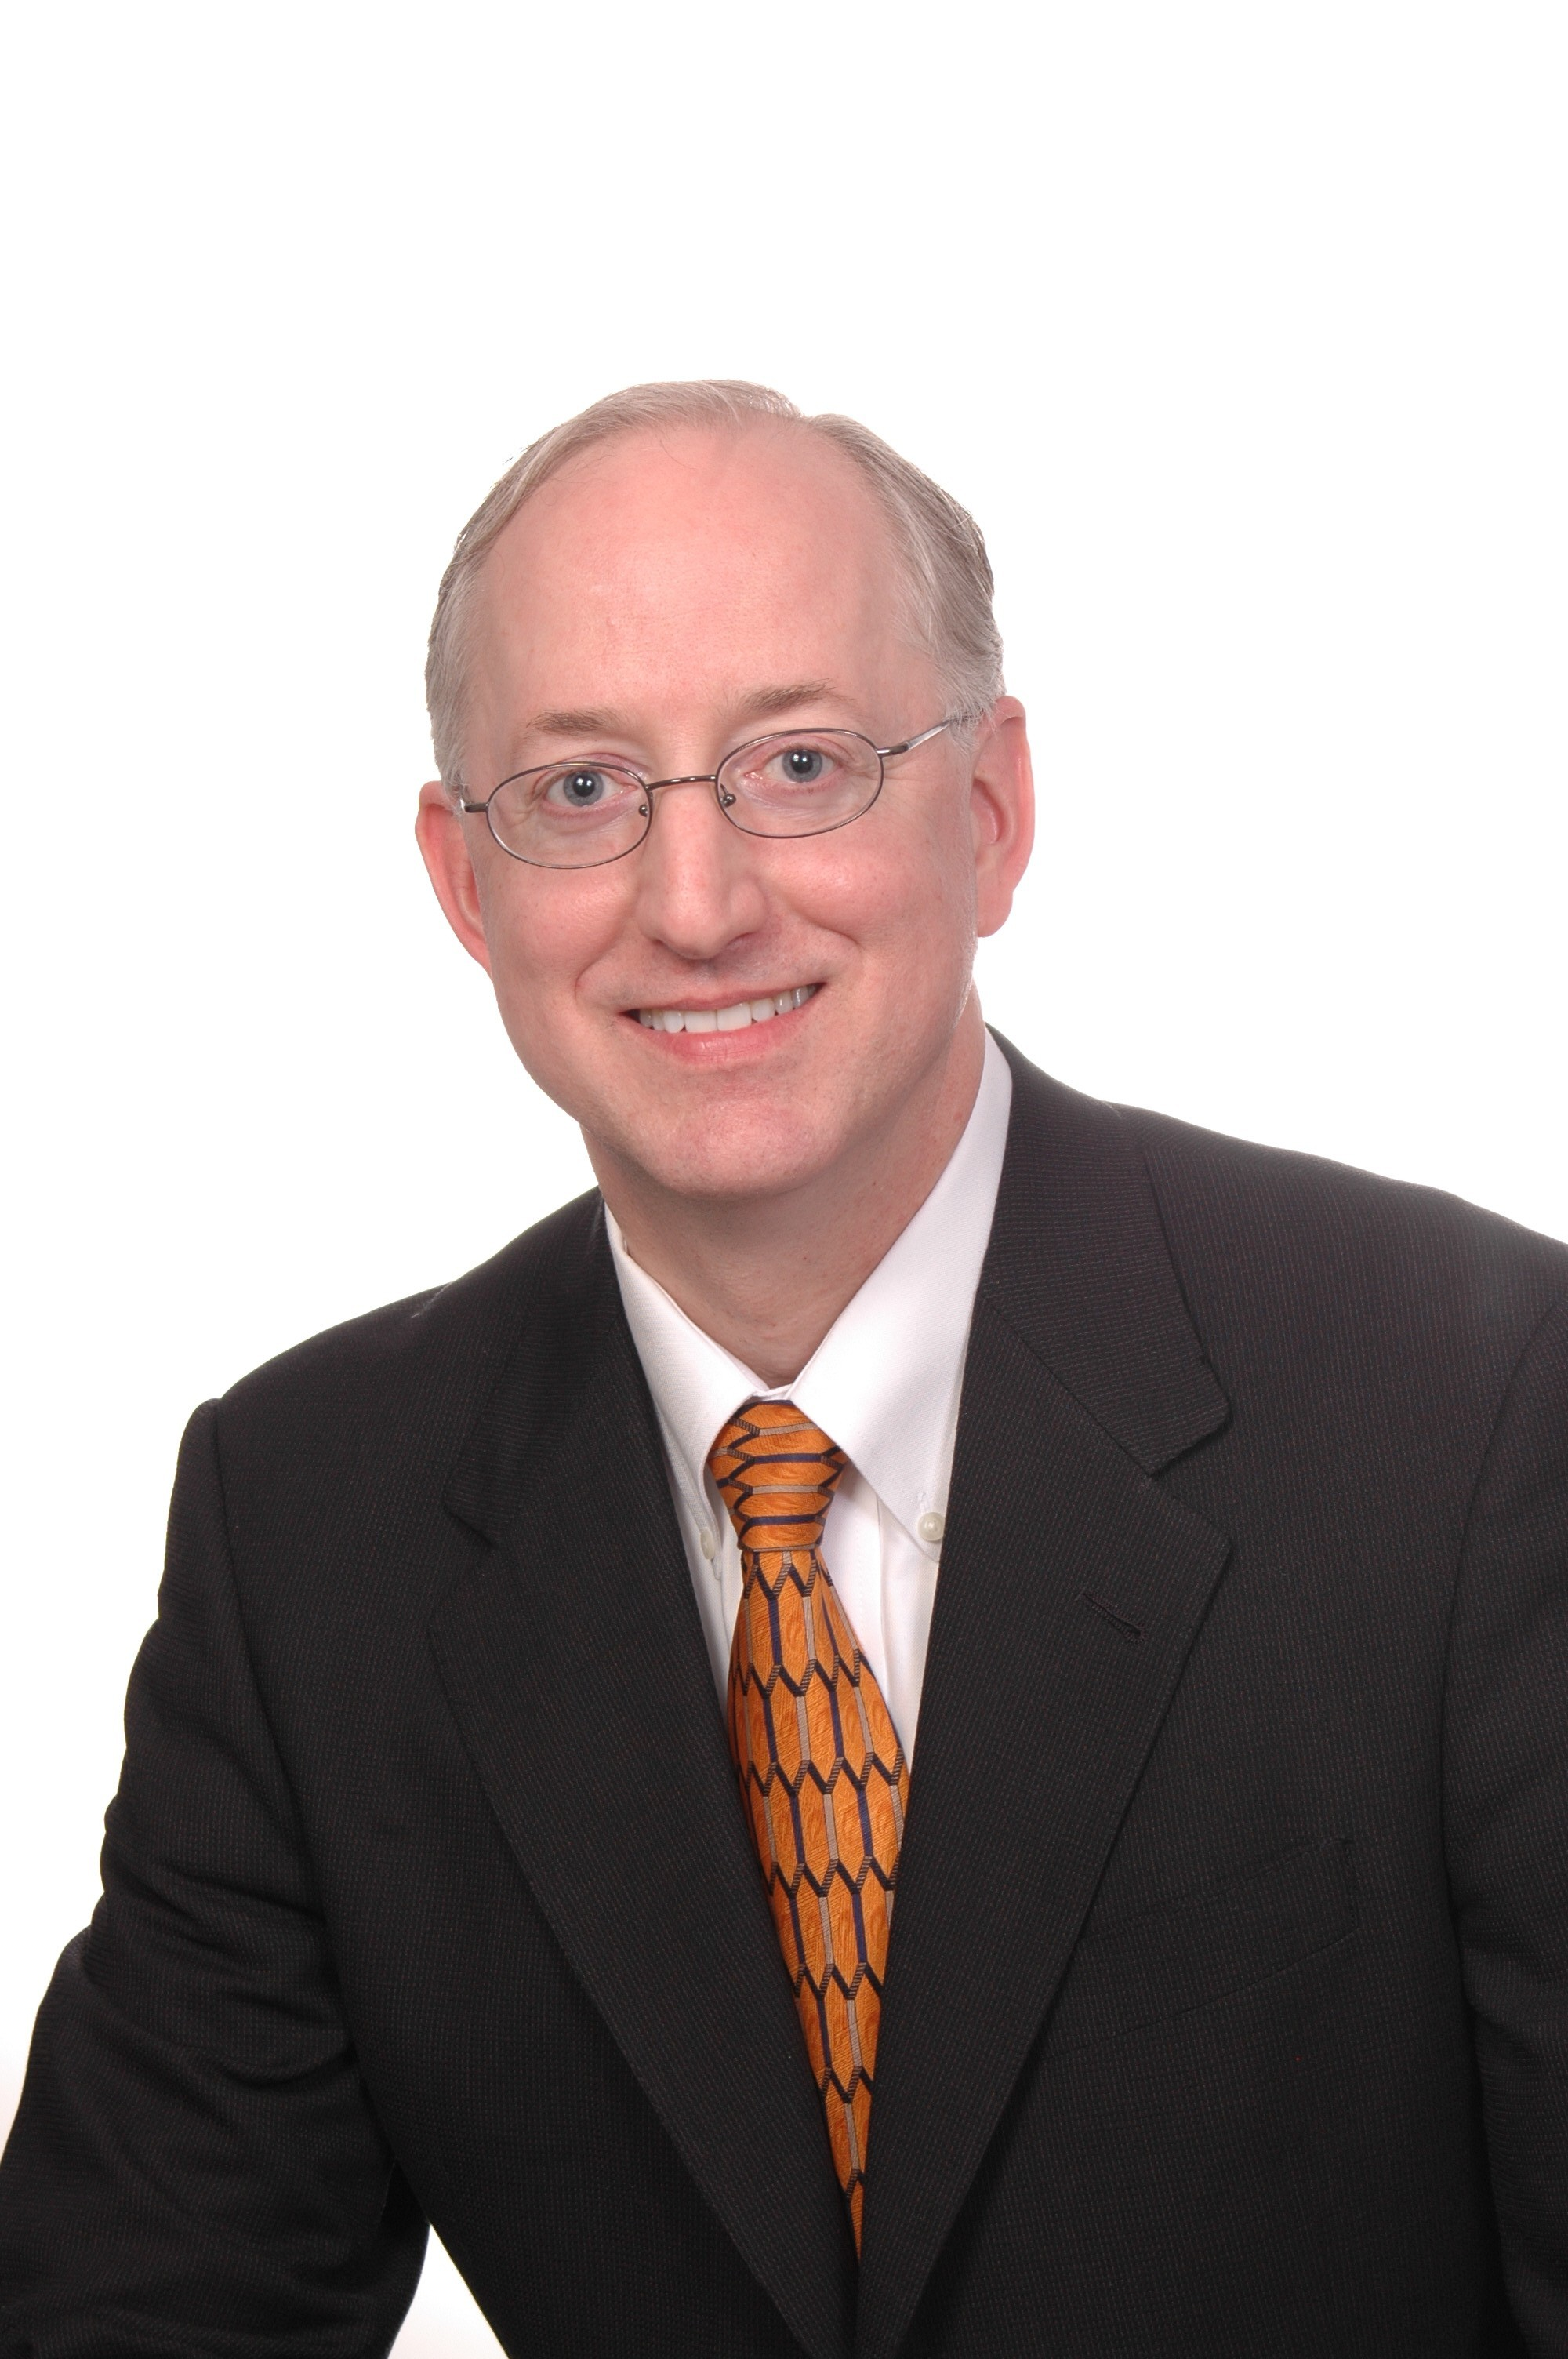 John Frymire, financial advisor Sellersburg IN